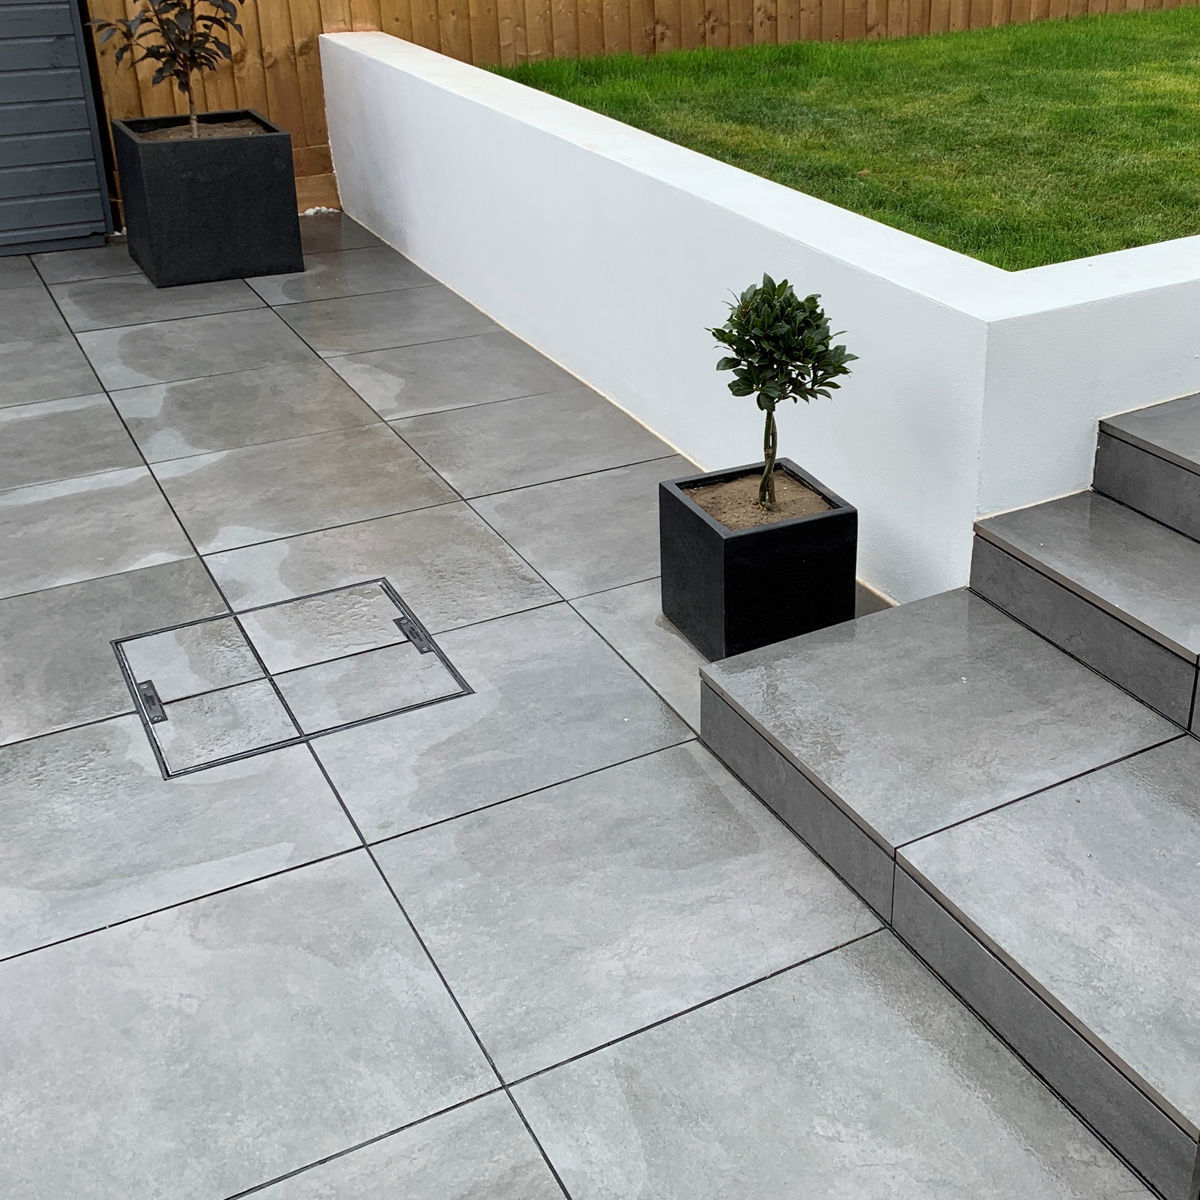 Outdoor Paving - Vale Anthracite Porcelain Paving Slabs | StoneSuperstore